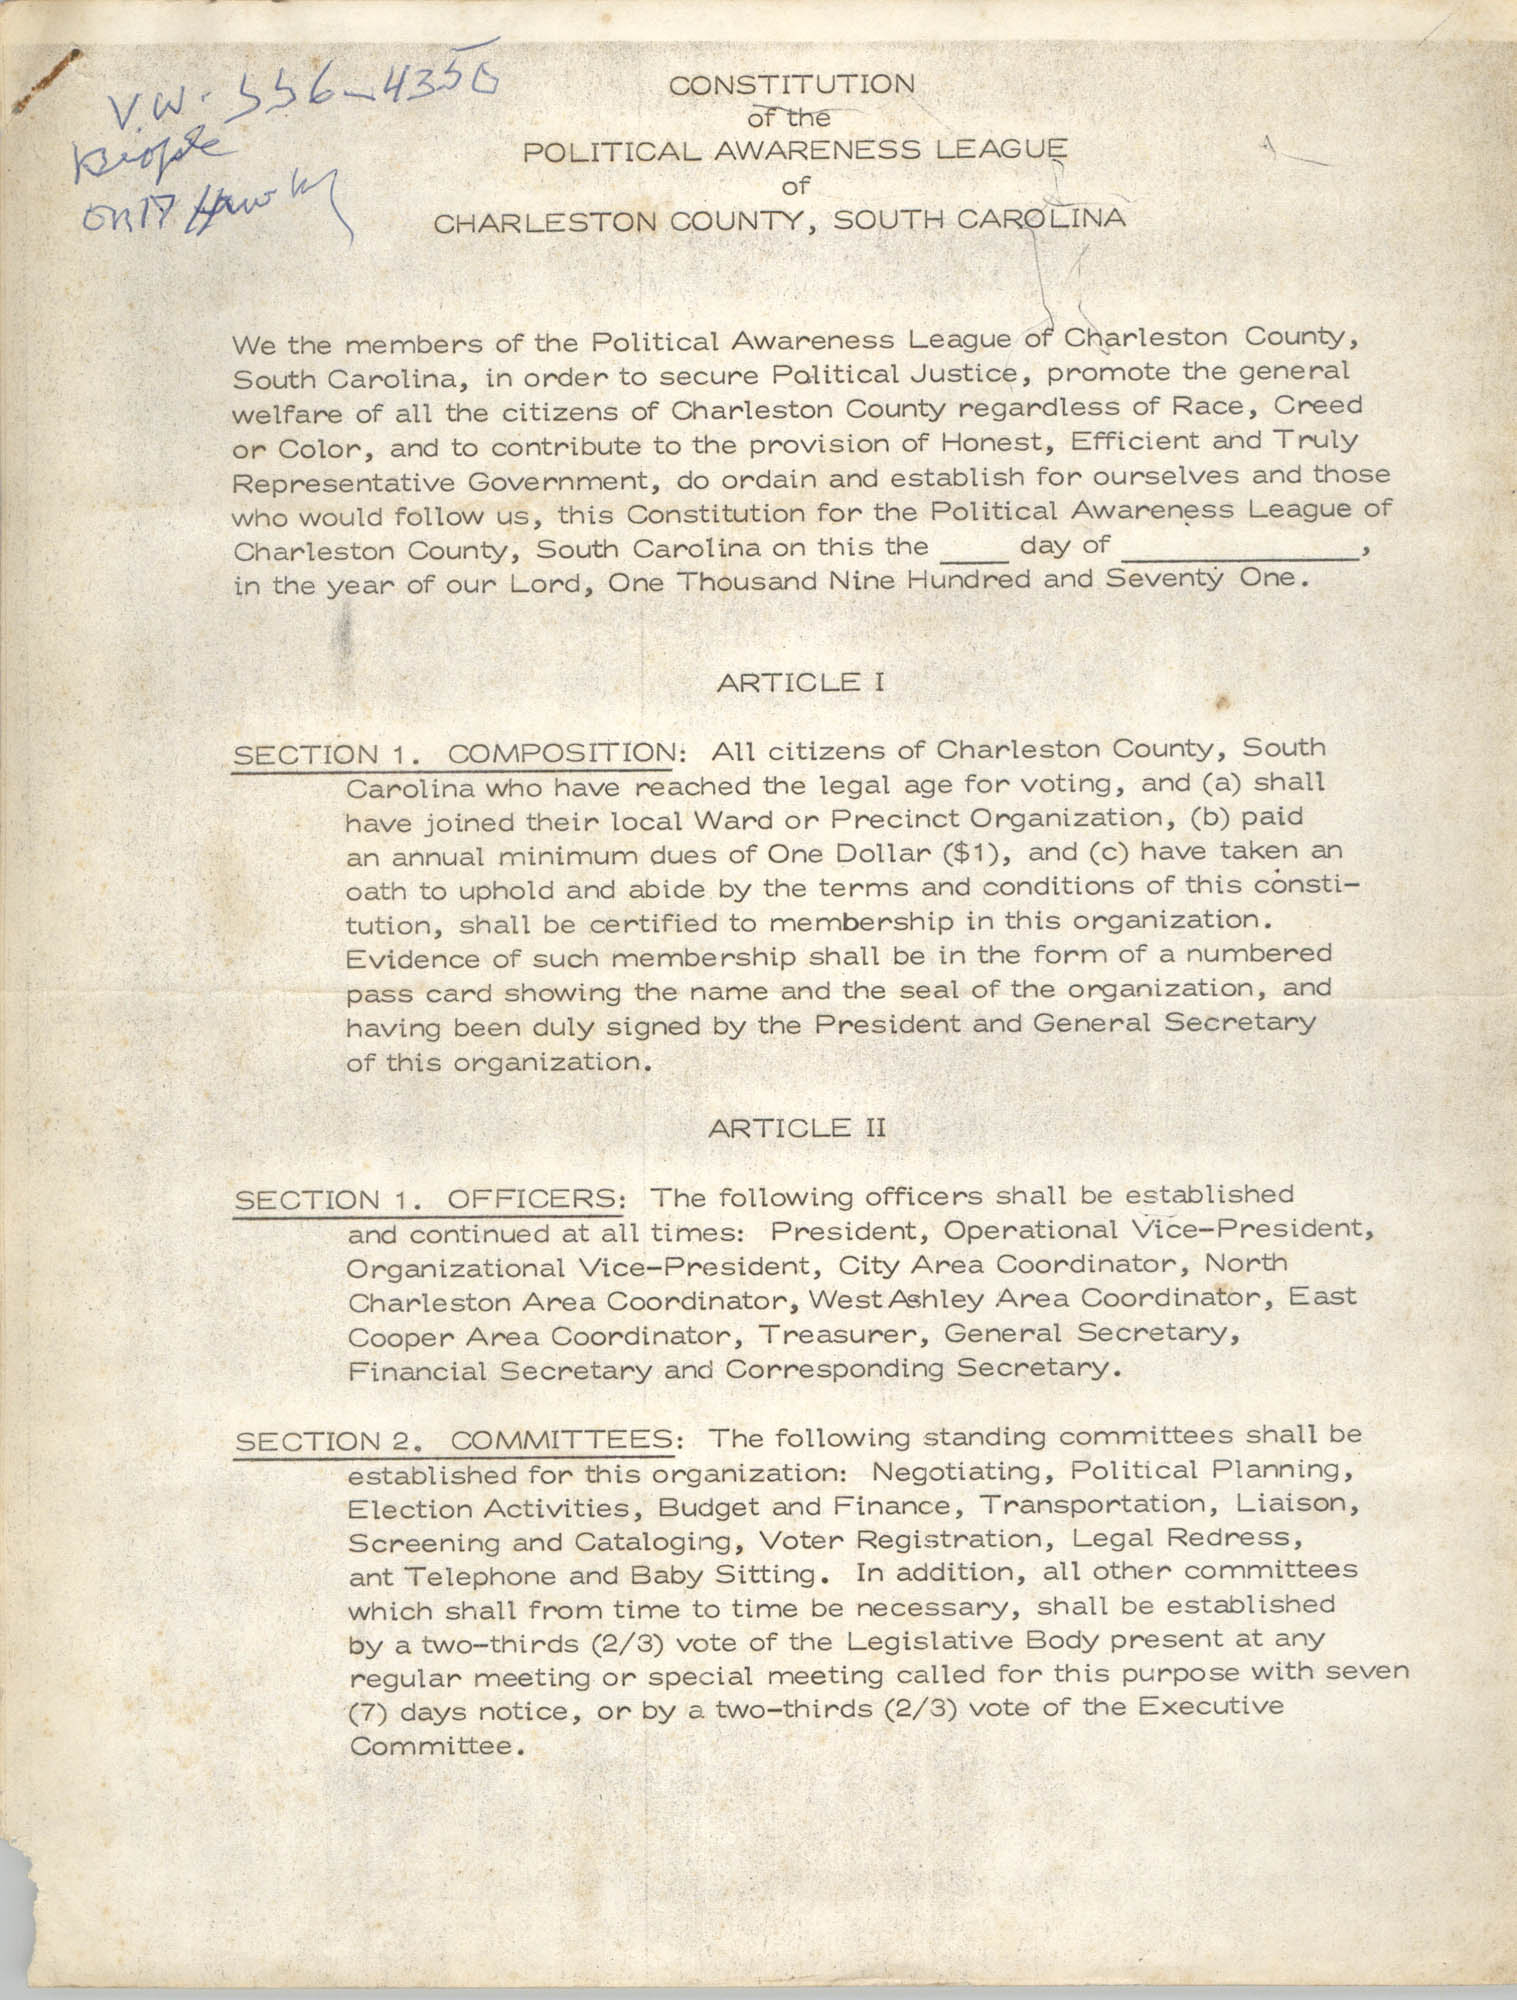 Constitution of the Political Awareness League of Charleston County, South Carolina